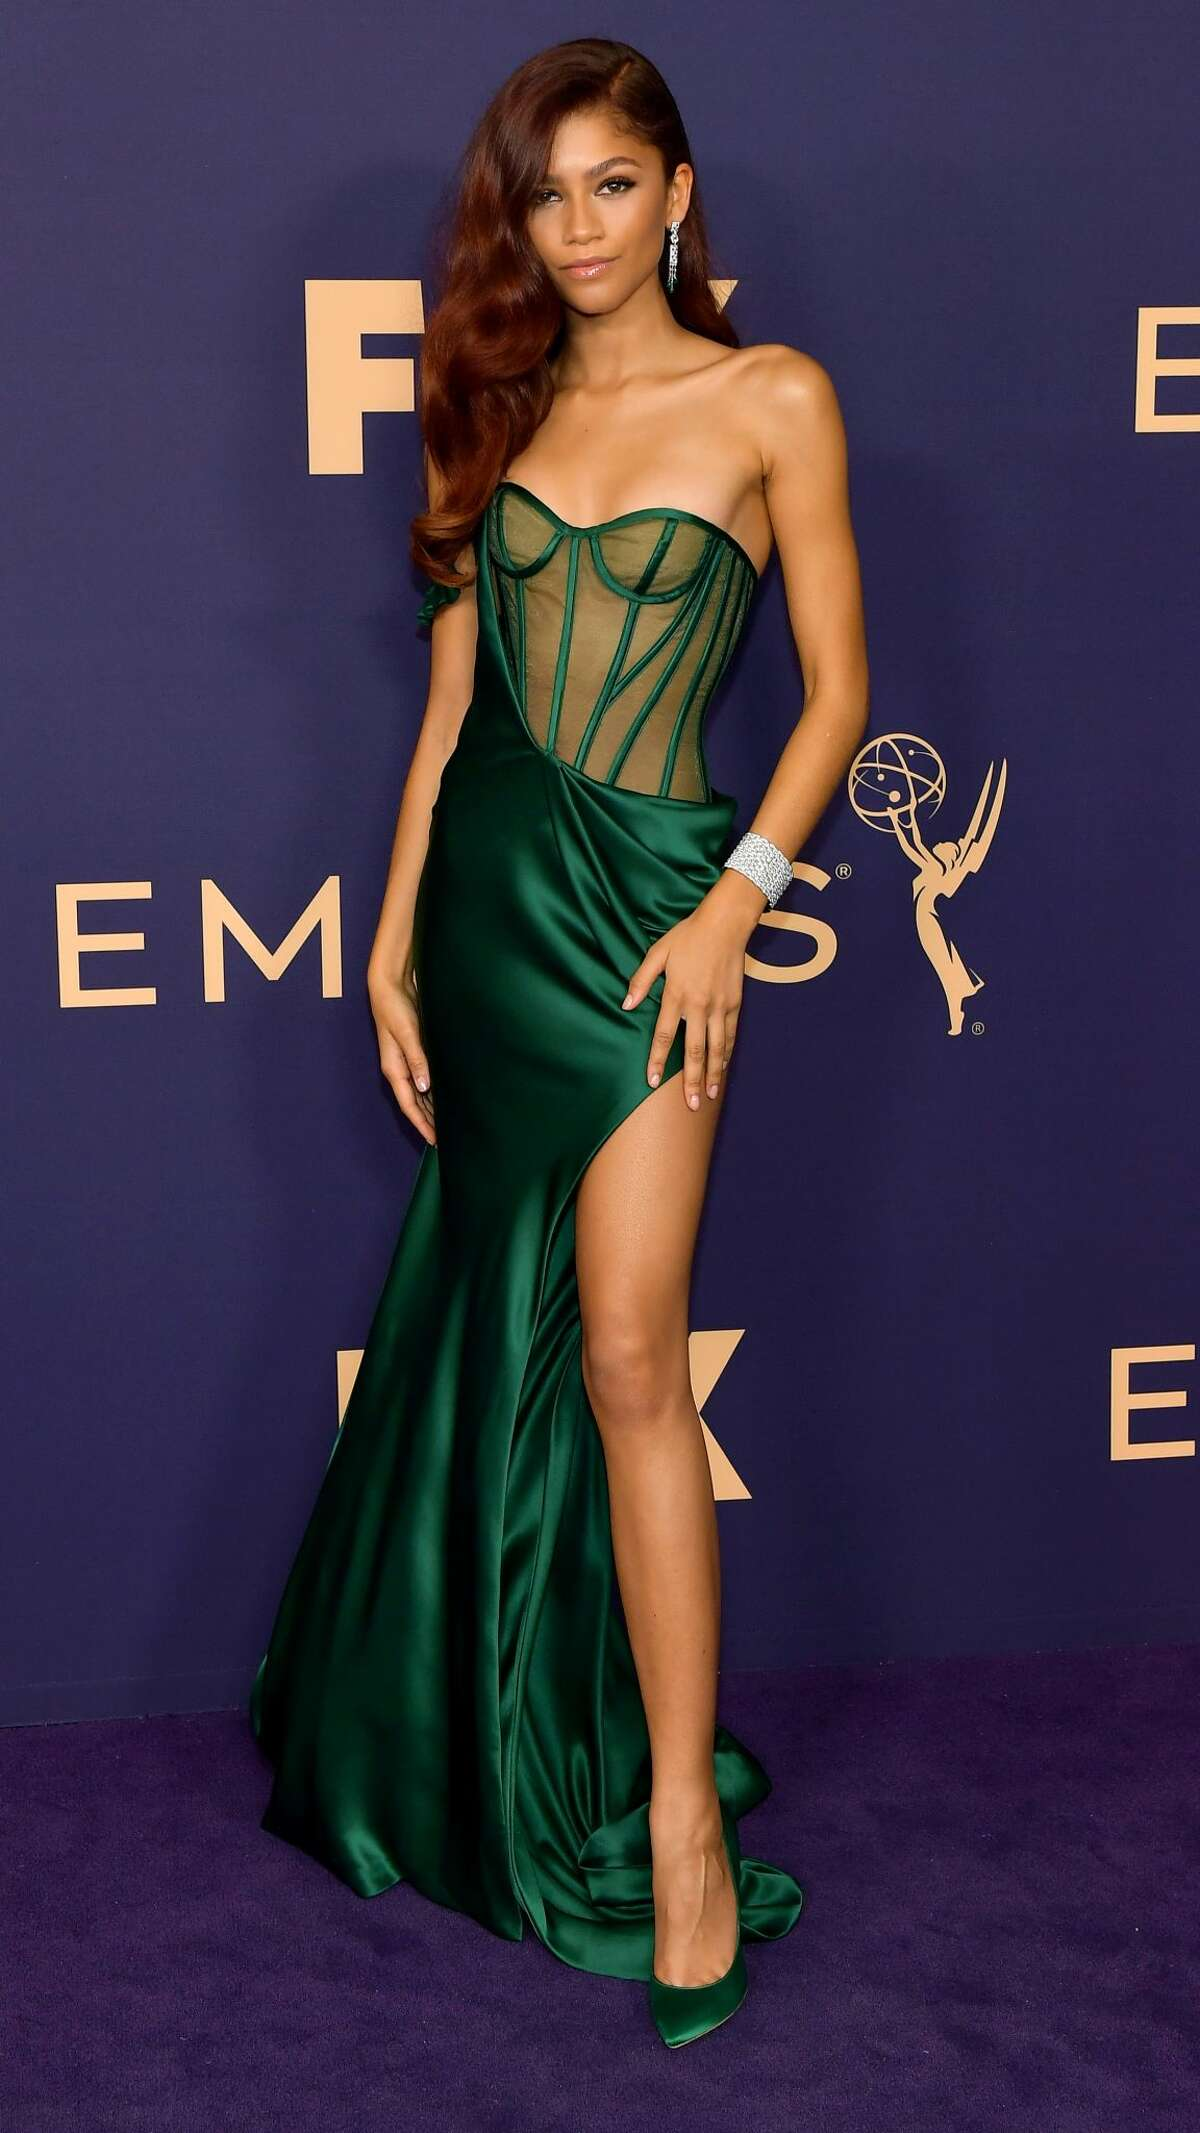 Zendaya attends the 71st Emmy Awards on Sept. 22, 2019 in Los Angeles, Calif.